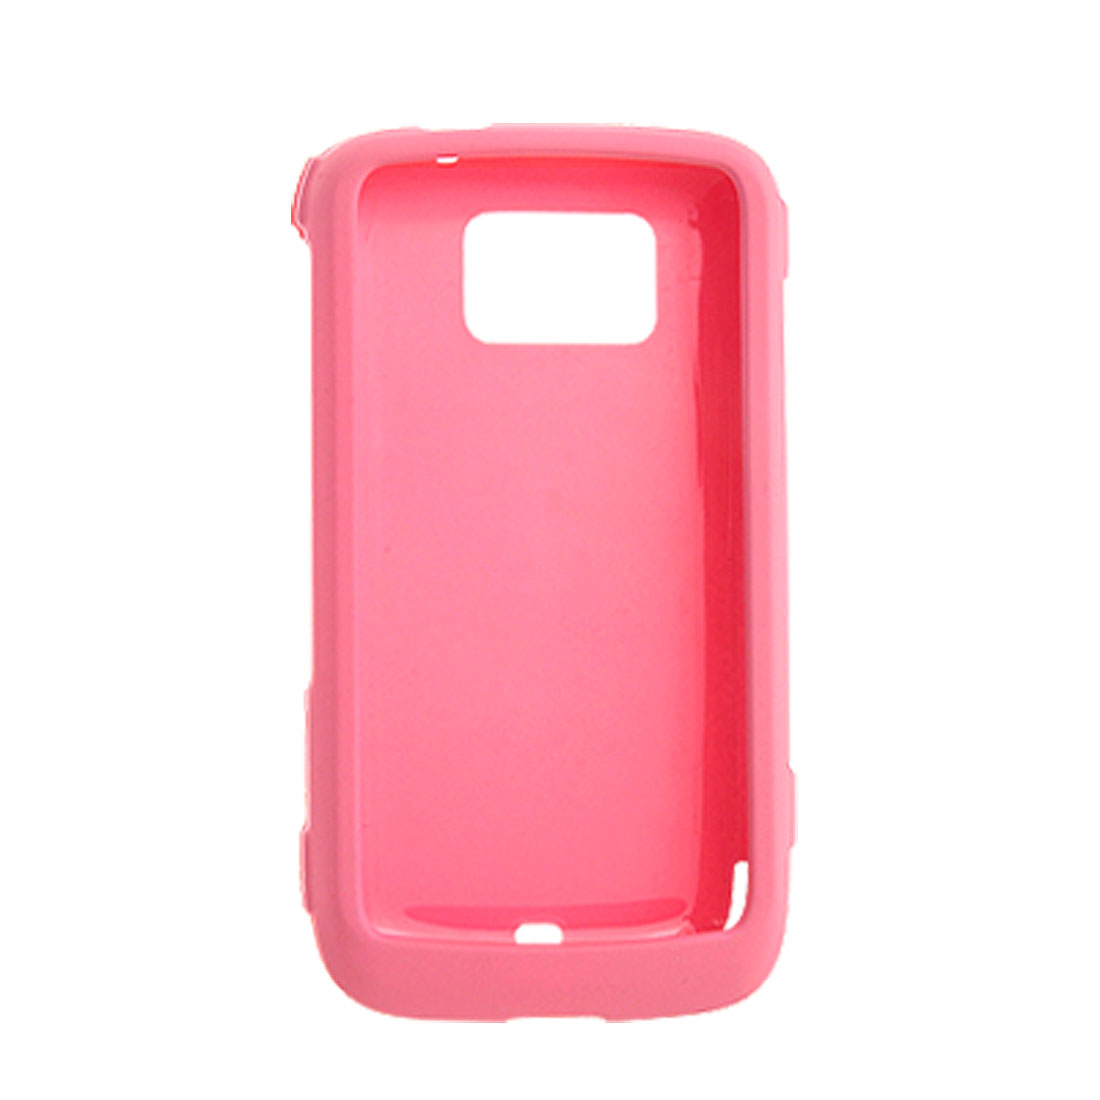 Pink Hard Plastic Case Protector for HTC Touch2 T3333